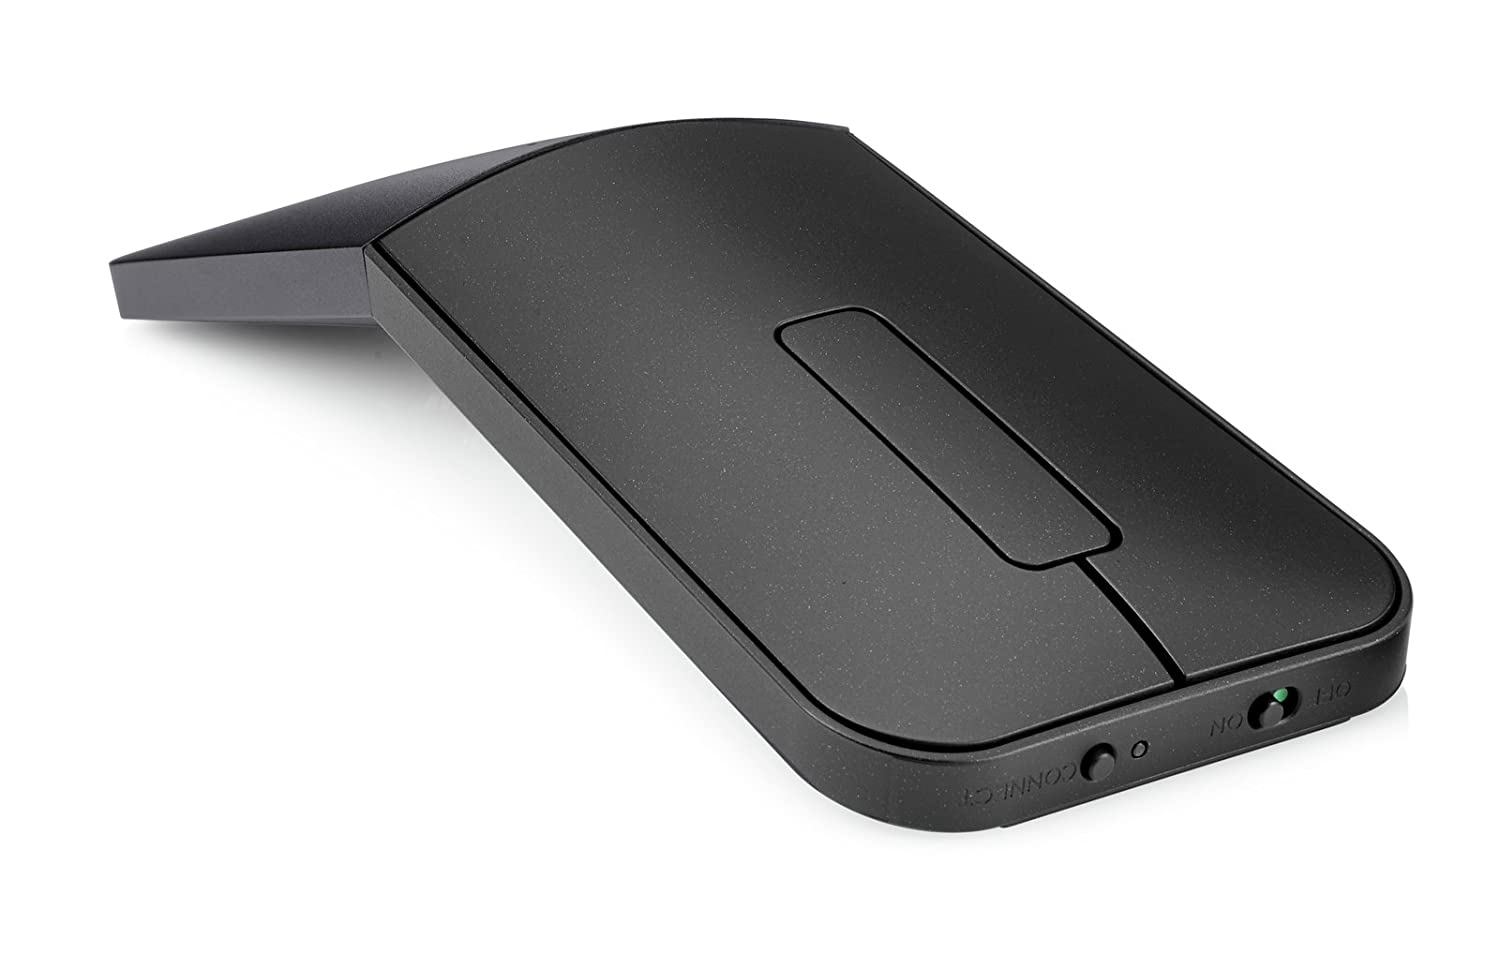 HP 2CE30AA MOUSE PRESENTER ELITE BLACK